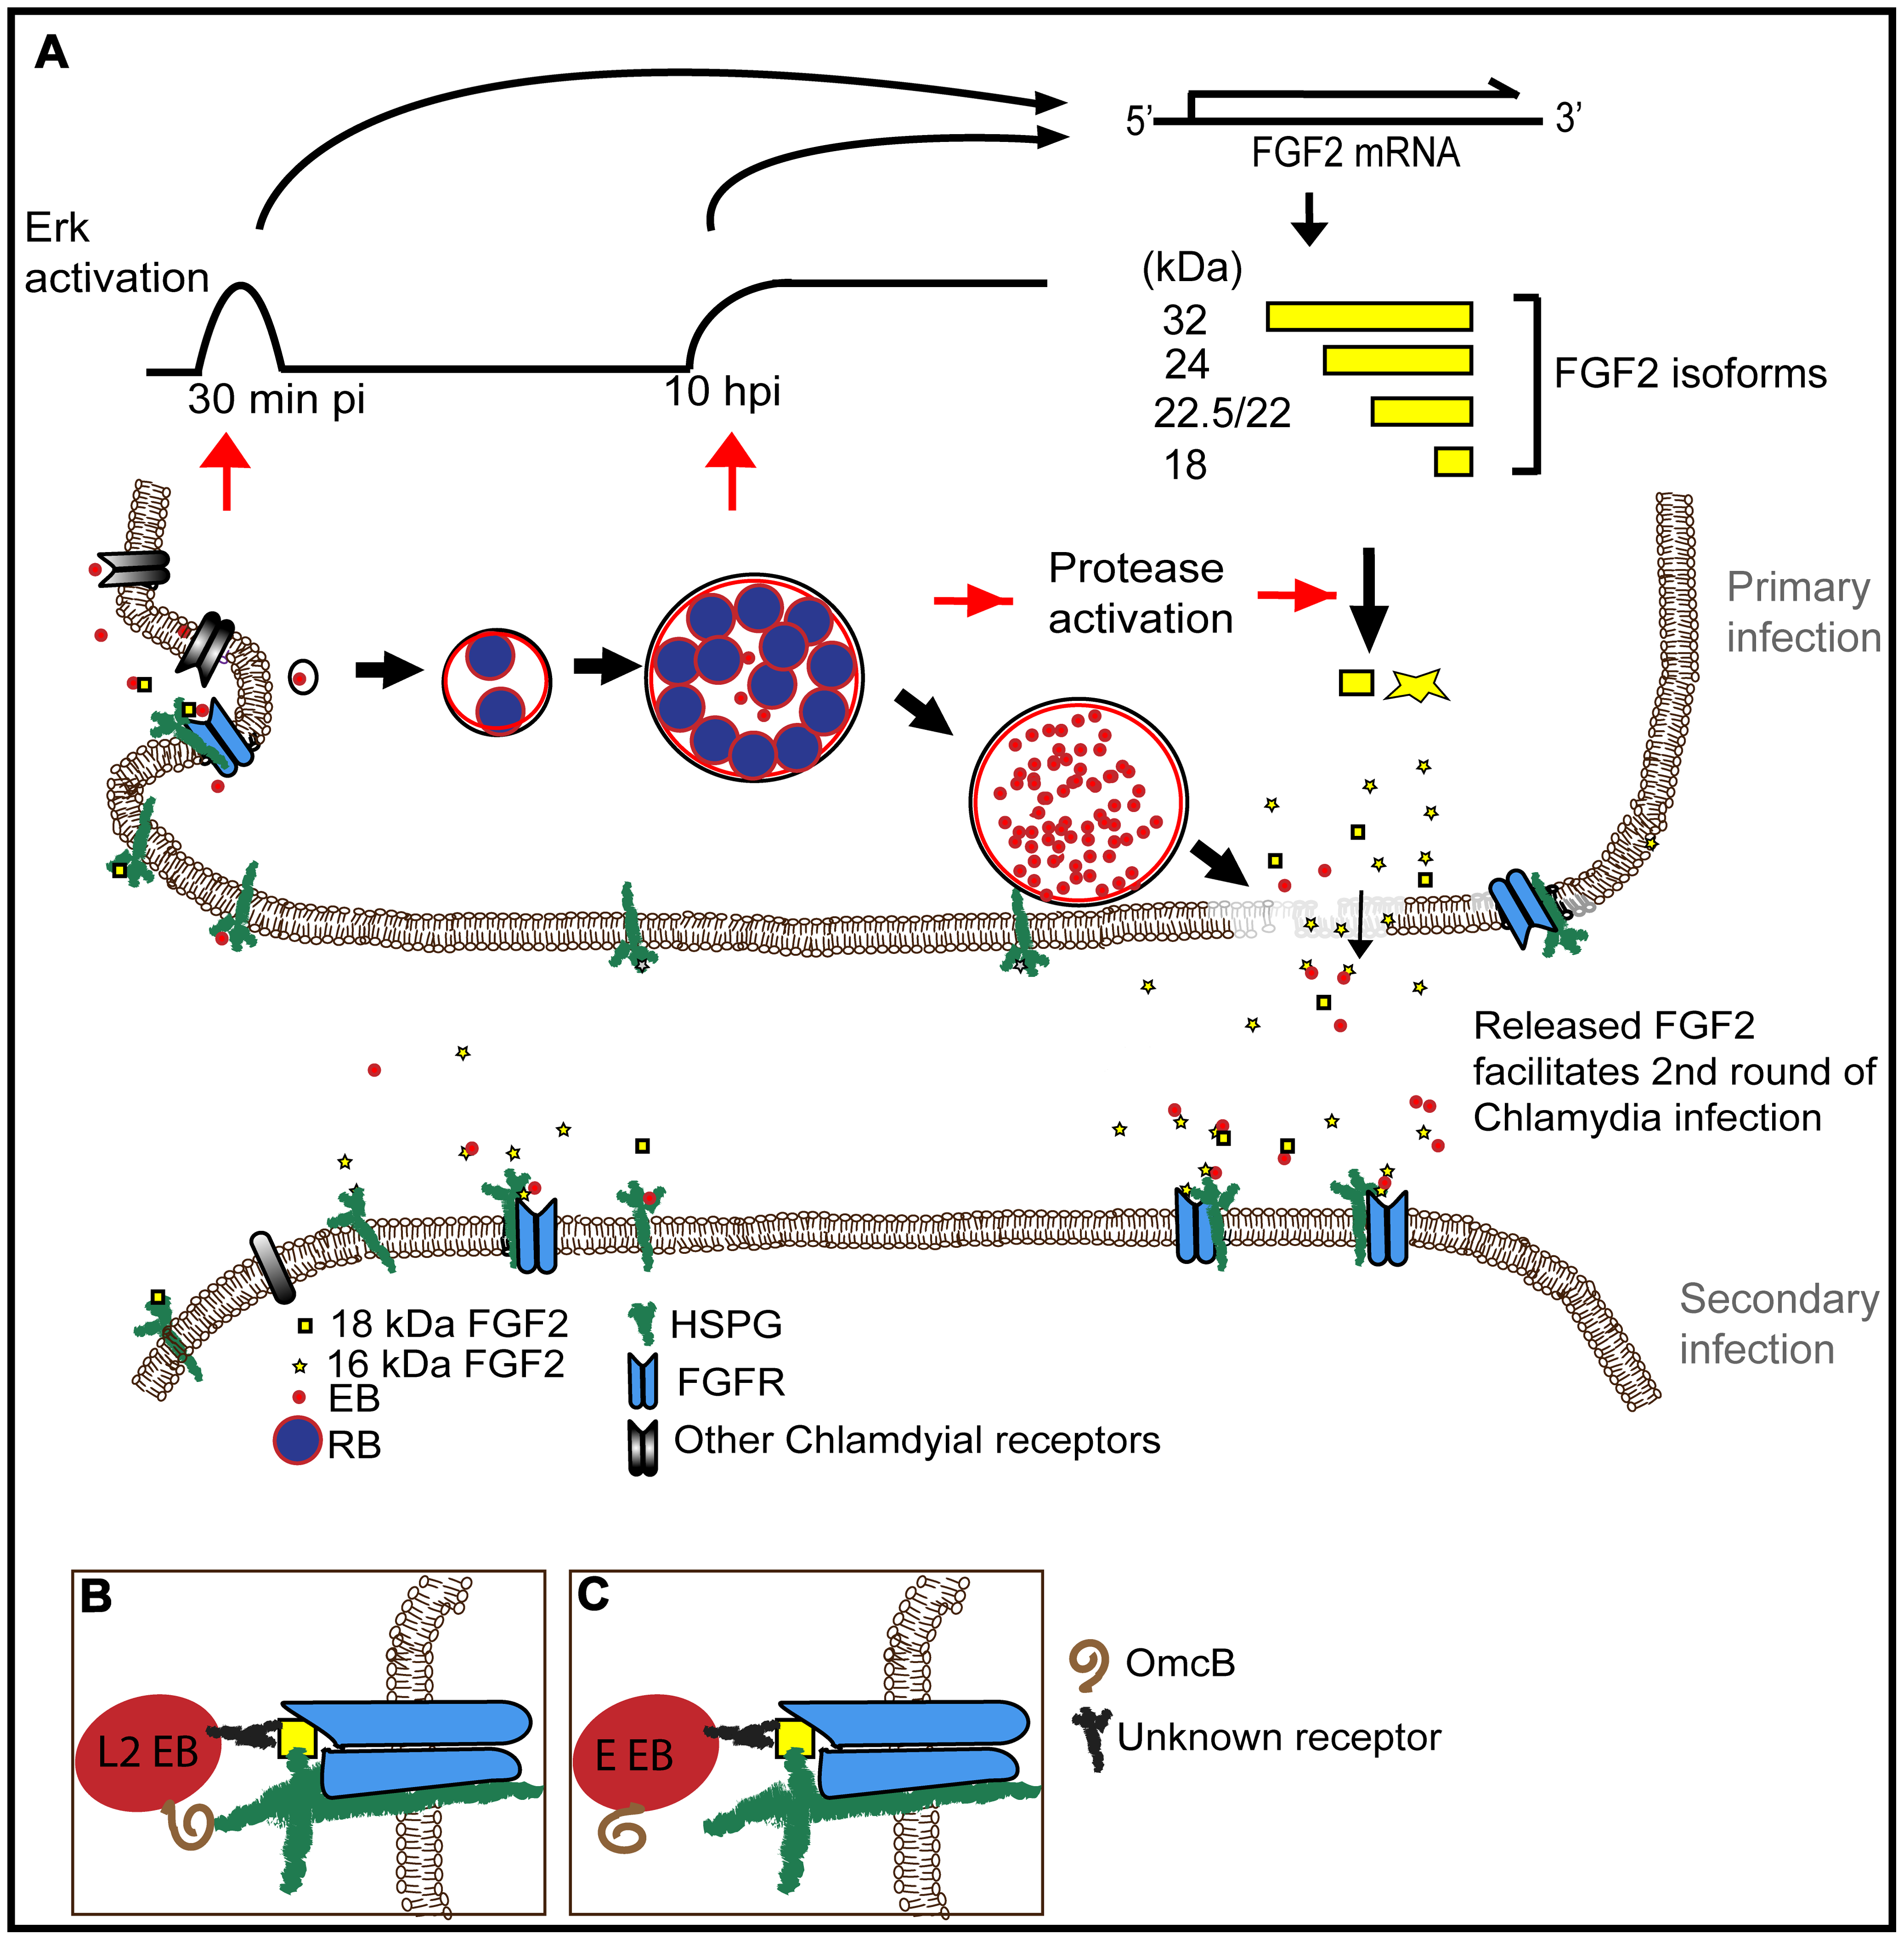 Working model for how <i>C. trachomatis</i> co-opts the FGF2 signaling pathway to enhance infection.